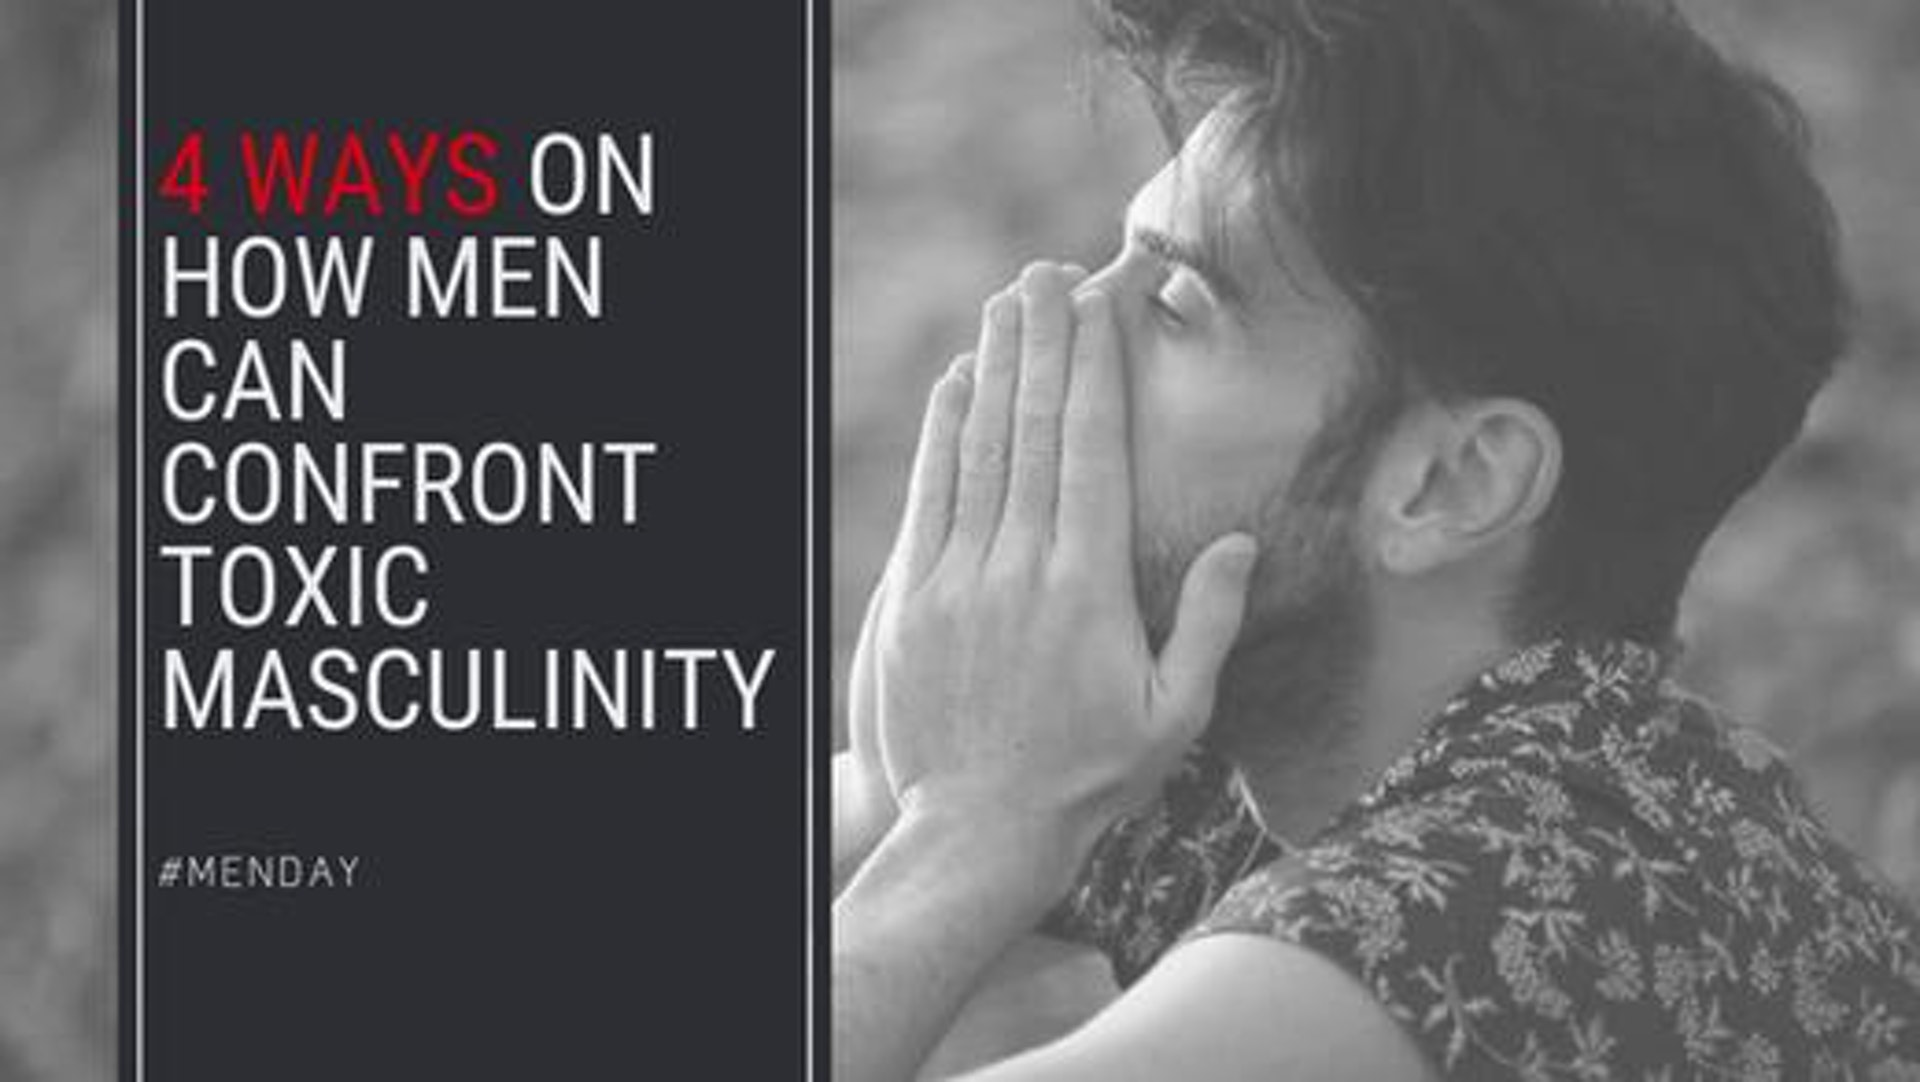 4 Ways On How Men Can Confront Toxic Masculinity